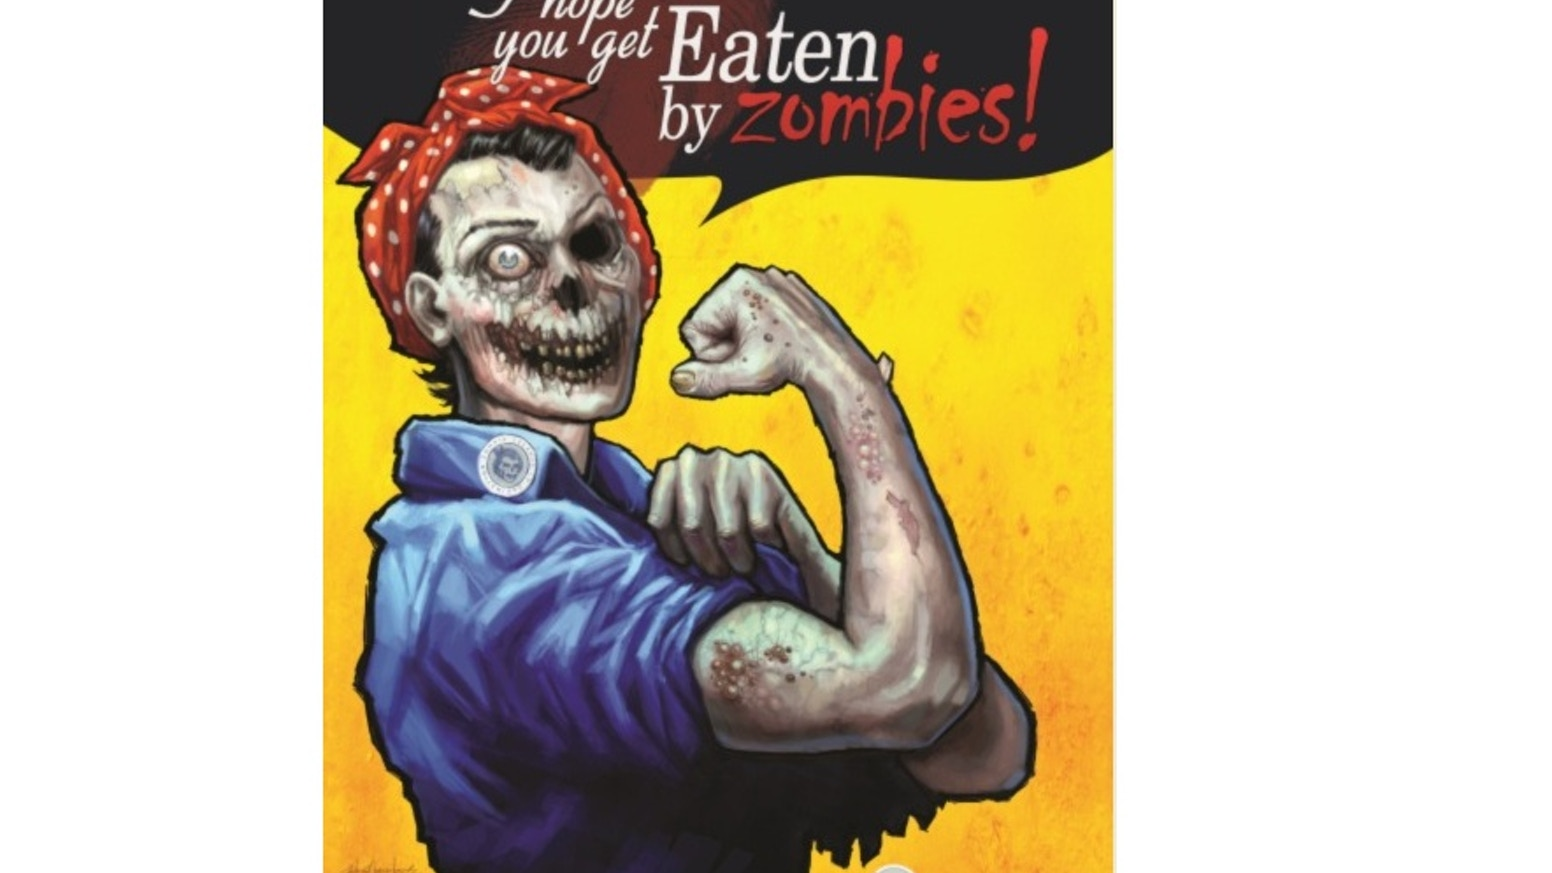 Eaten By Zombies! is a Post-apocalyptic Zombie movie experience in a game for 2-4 players.  Feel the dread, scarcity & doom you crave!